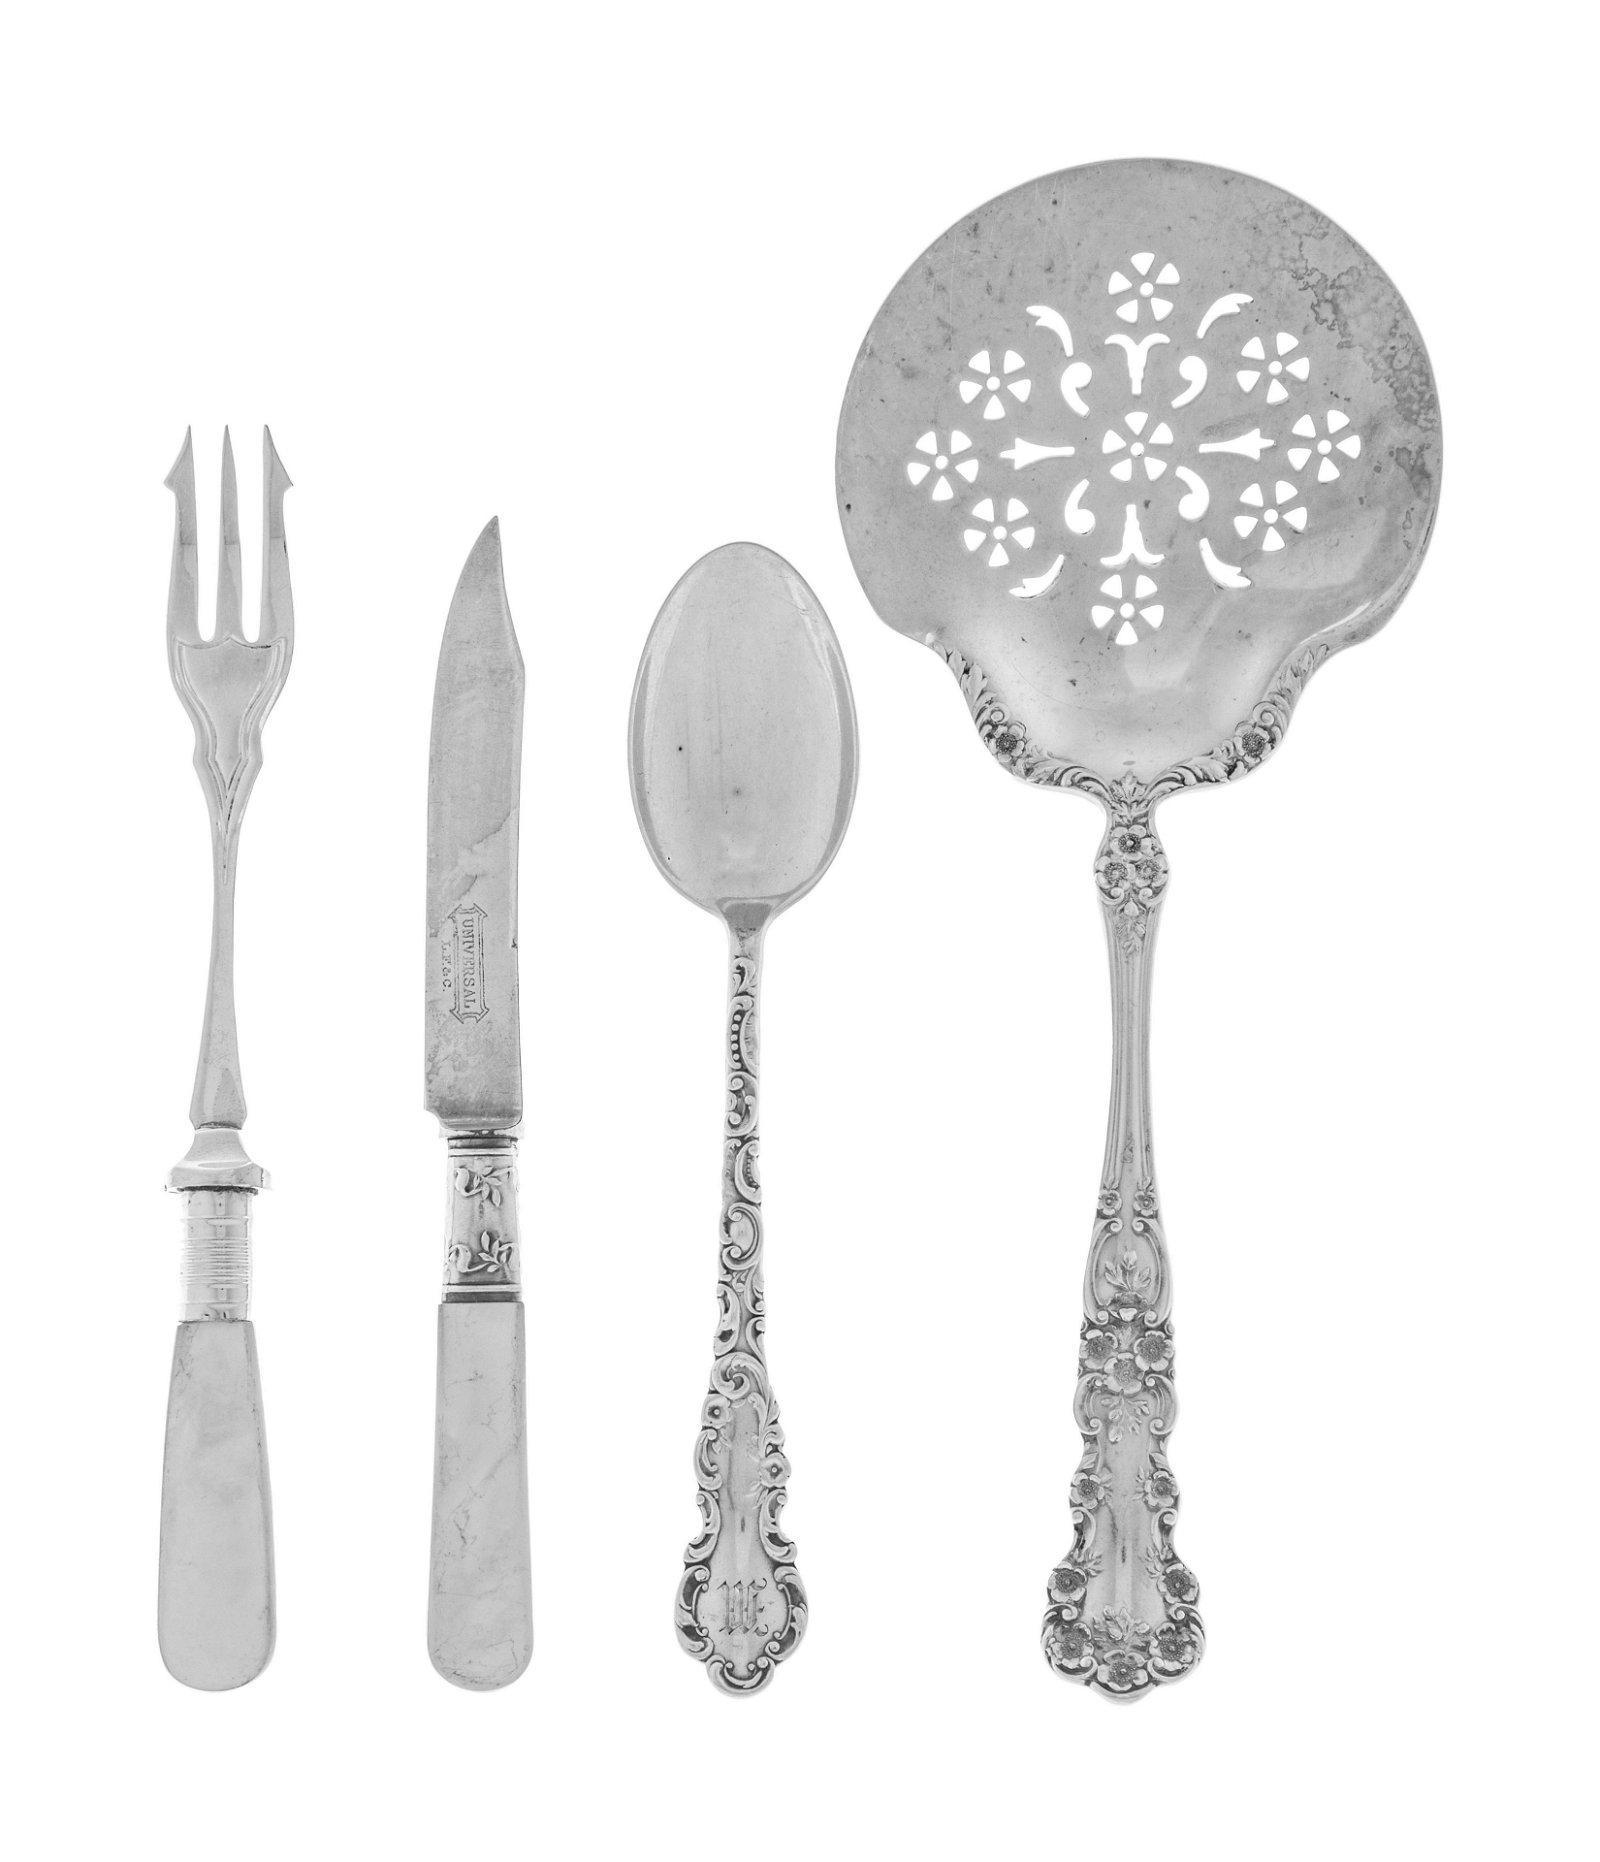 A Collection of Silver and Silver-Plate Flatware